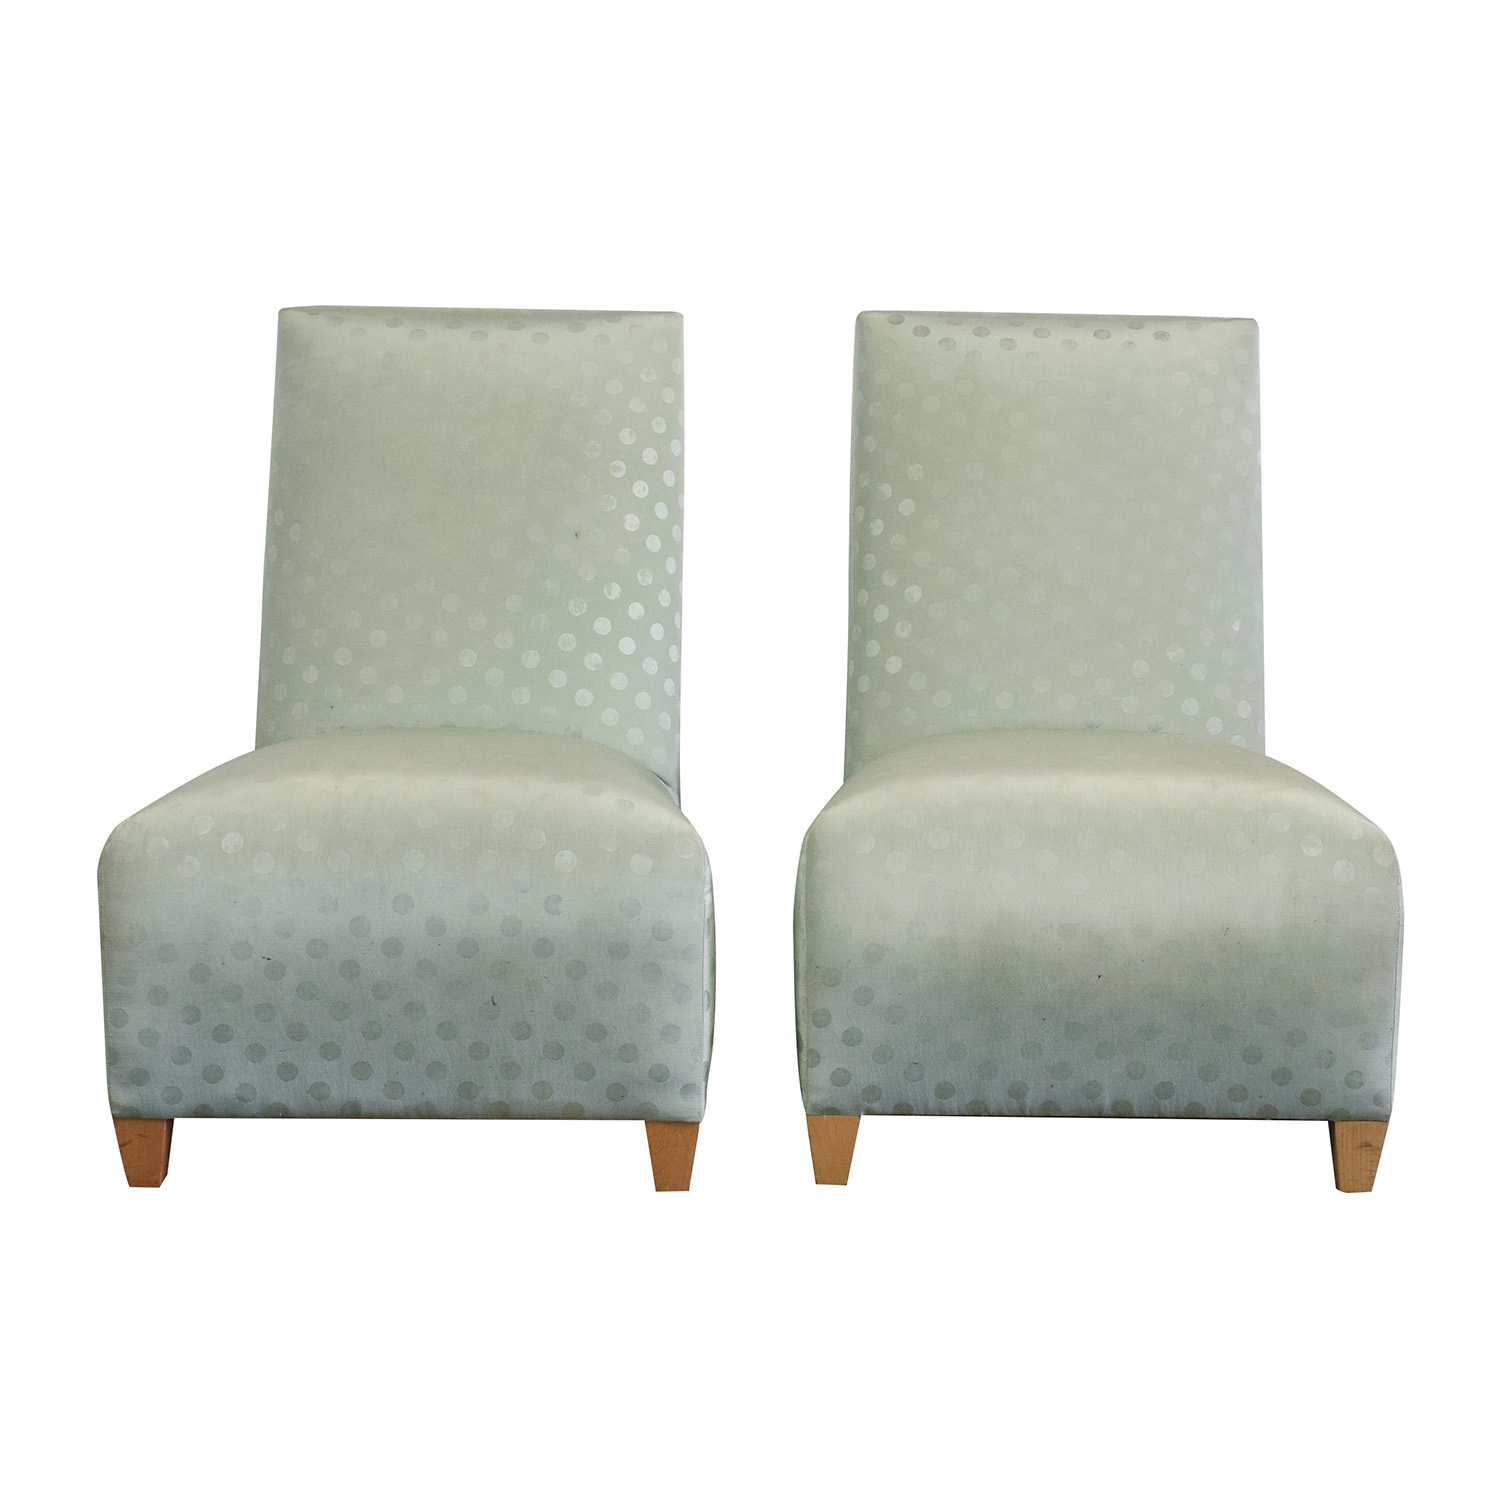 Donghia Donghia Light Green Chairs for sale